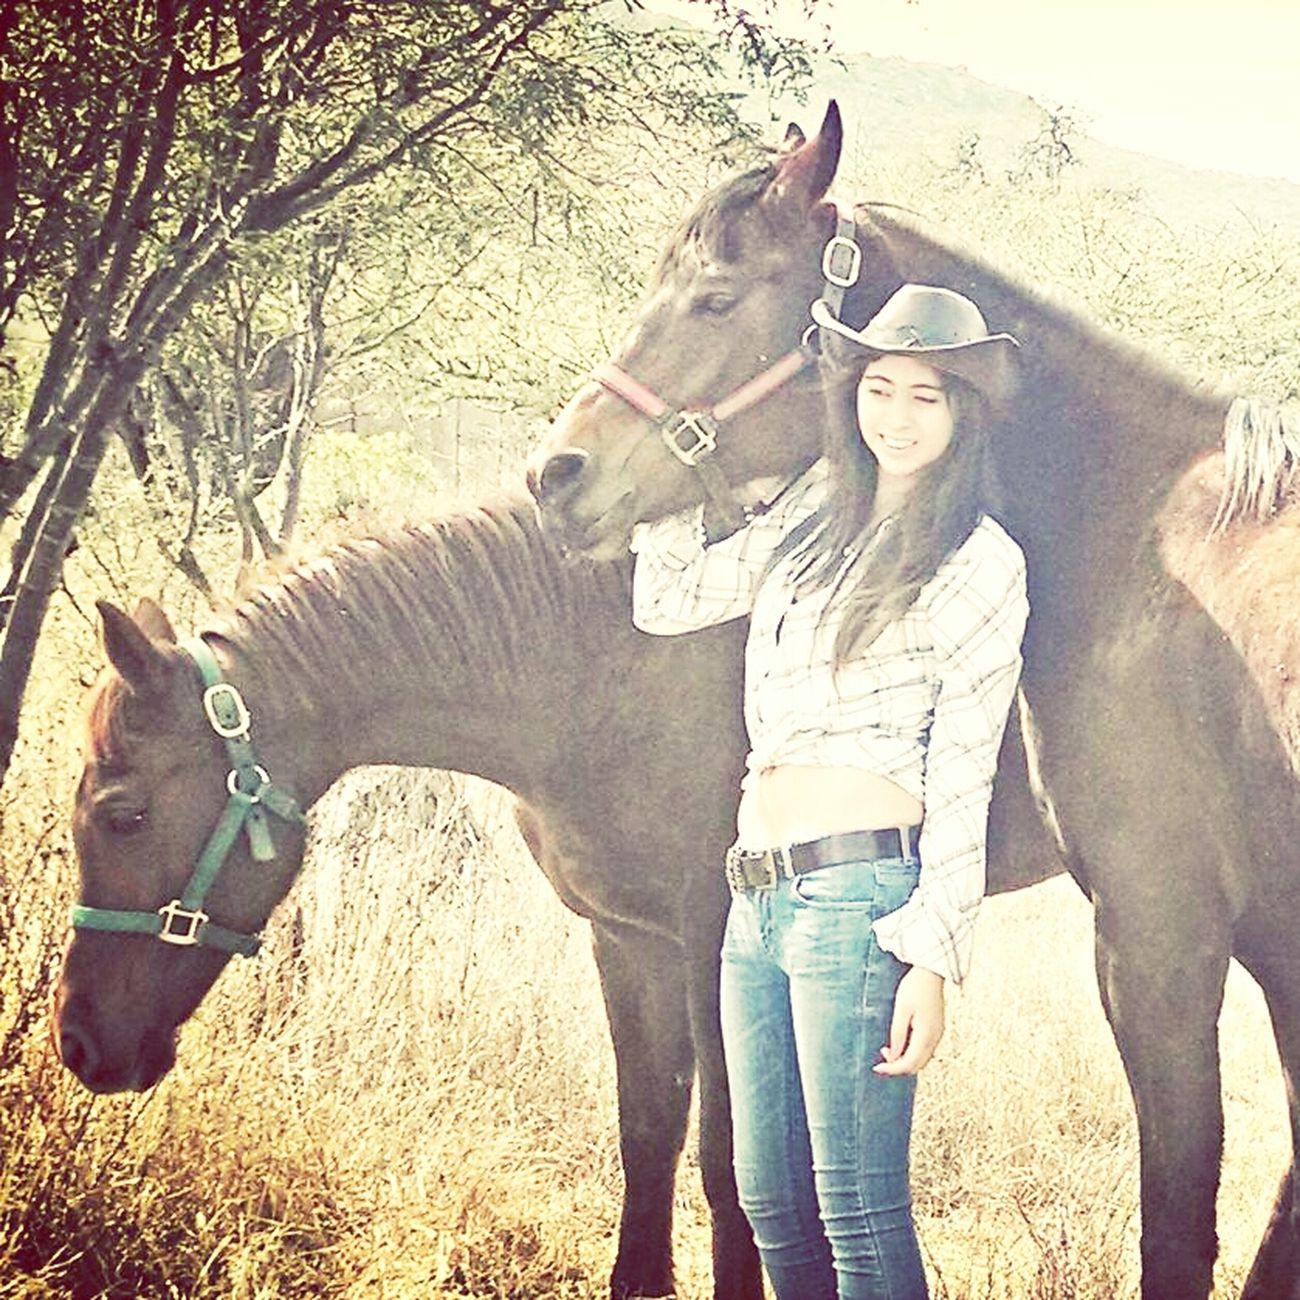 Myhorses Ilovethem! Being Us!